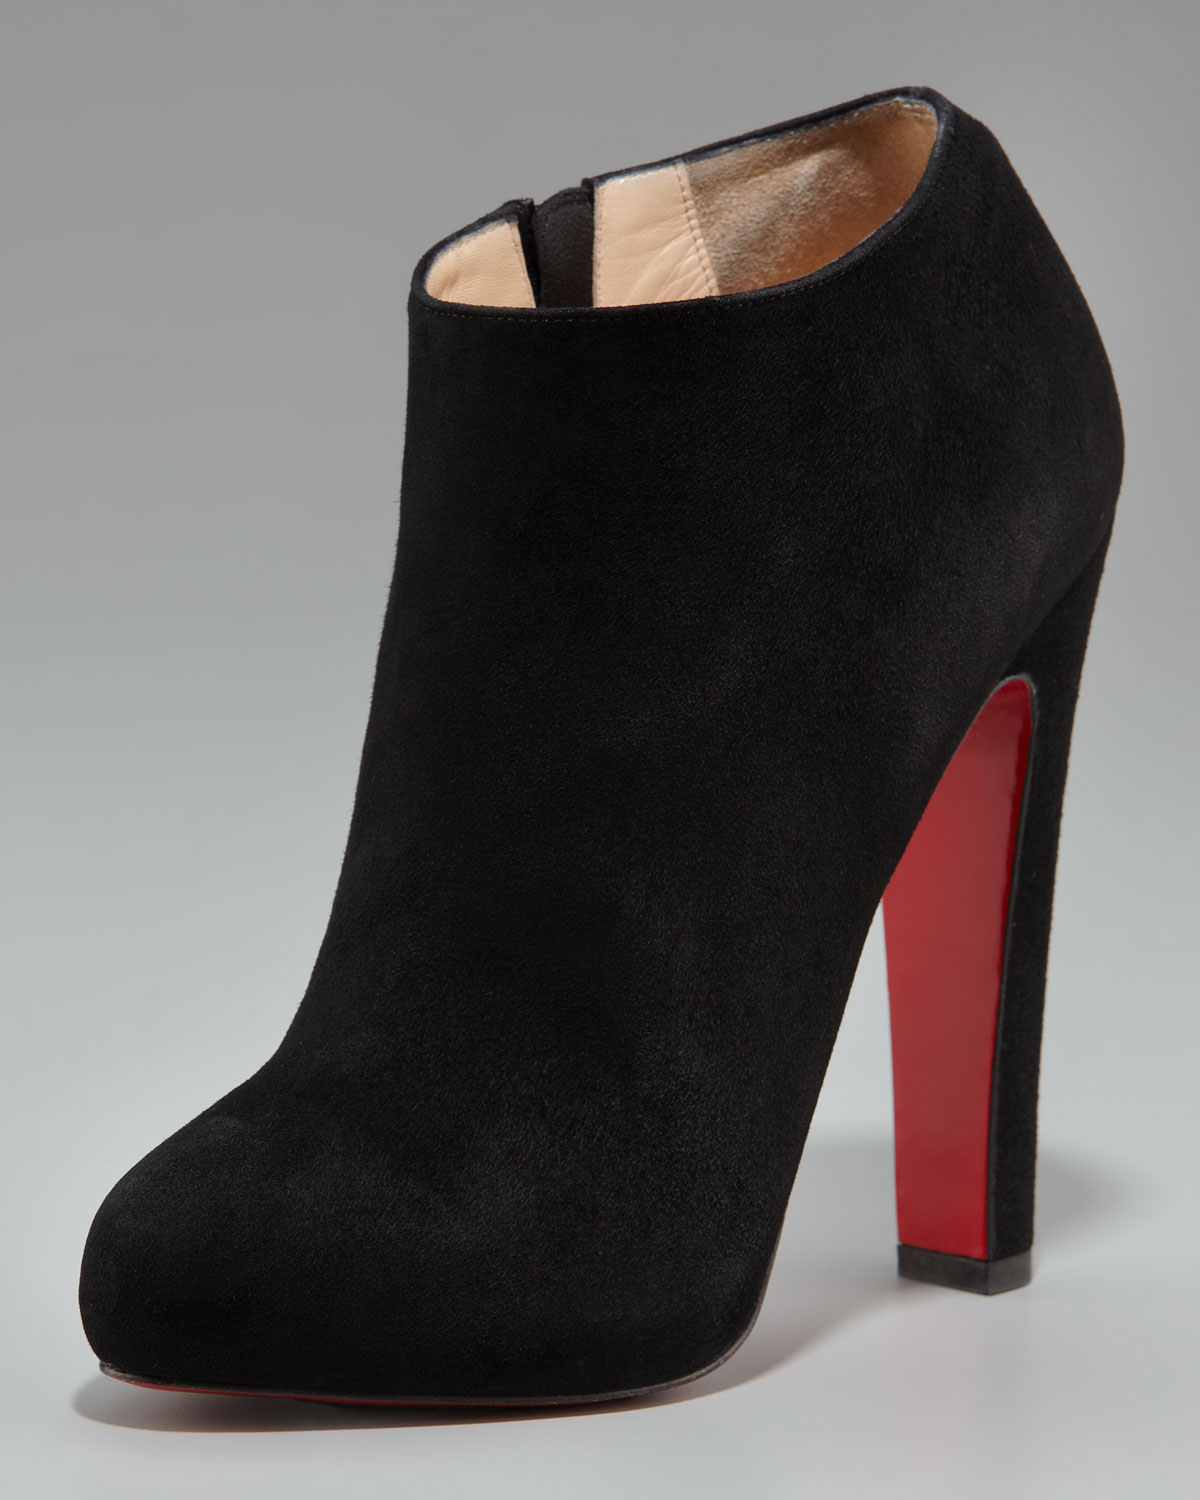 christian louboutin men trainers - Christian louboutin Suede Thick-heel Bootie in Brown (bordeaux) | Lyst